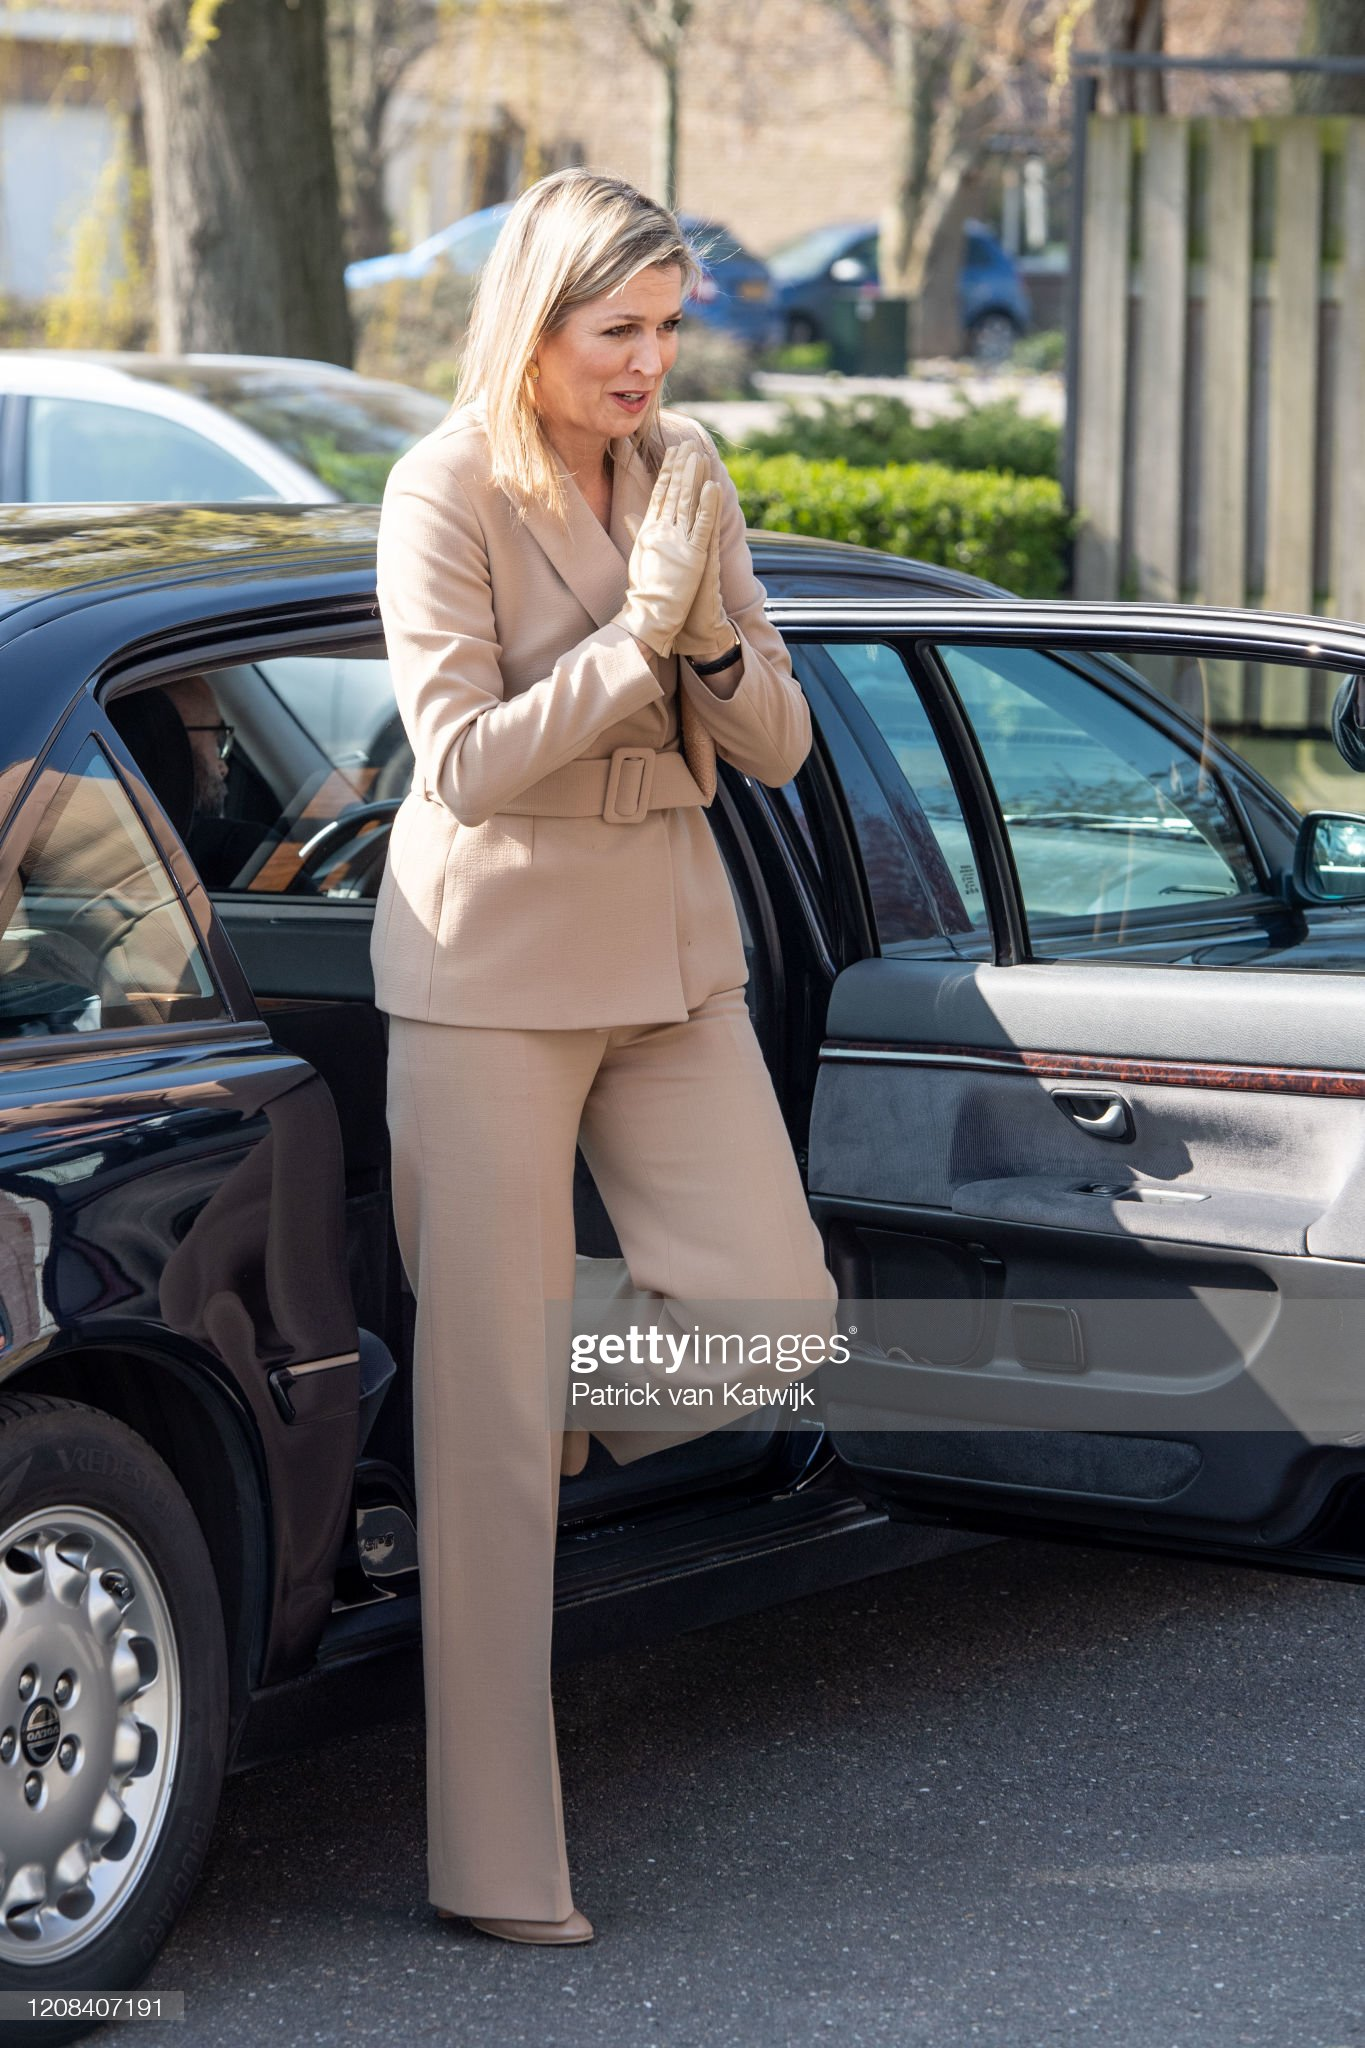 https://media.gettyimages.com/photos/queen-maxima-of-the-netherlands-visits-zuidbaak-floriculture-company-picture-id1208407191?s=2048x2048